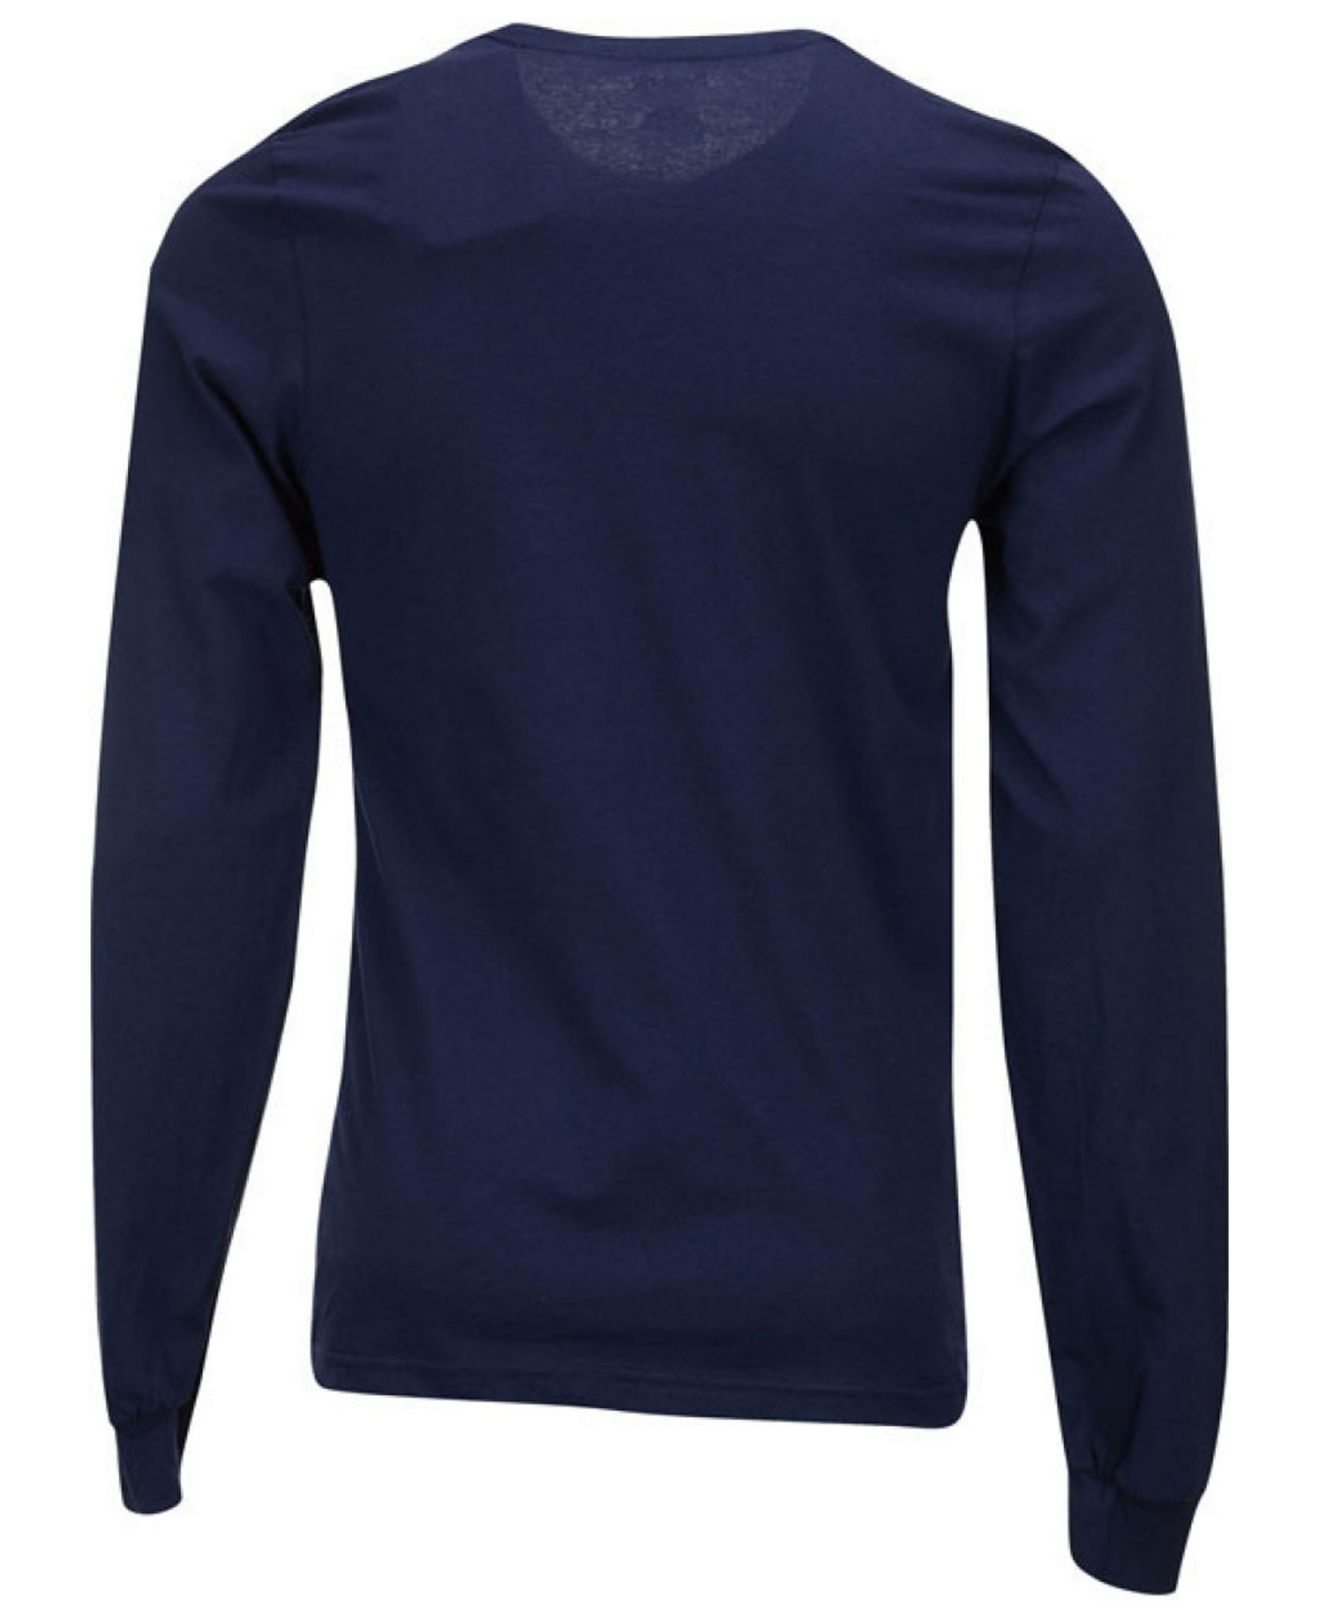 Navy Blue Long Sleeve T Shirt Mens